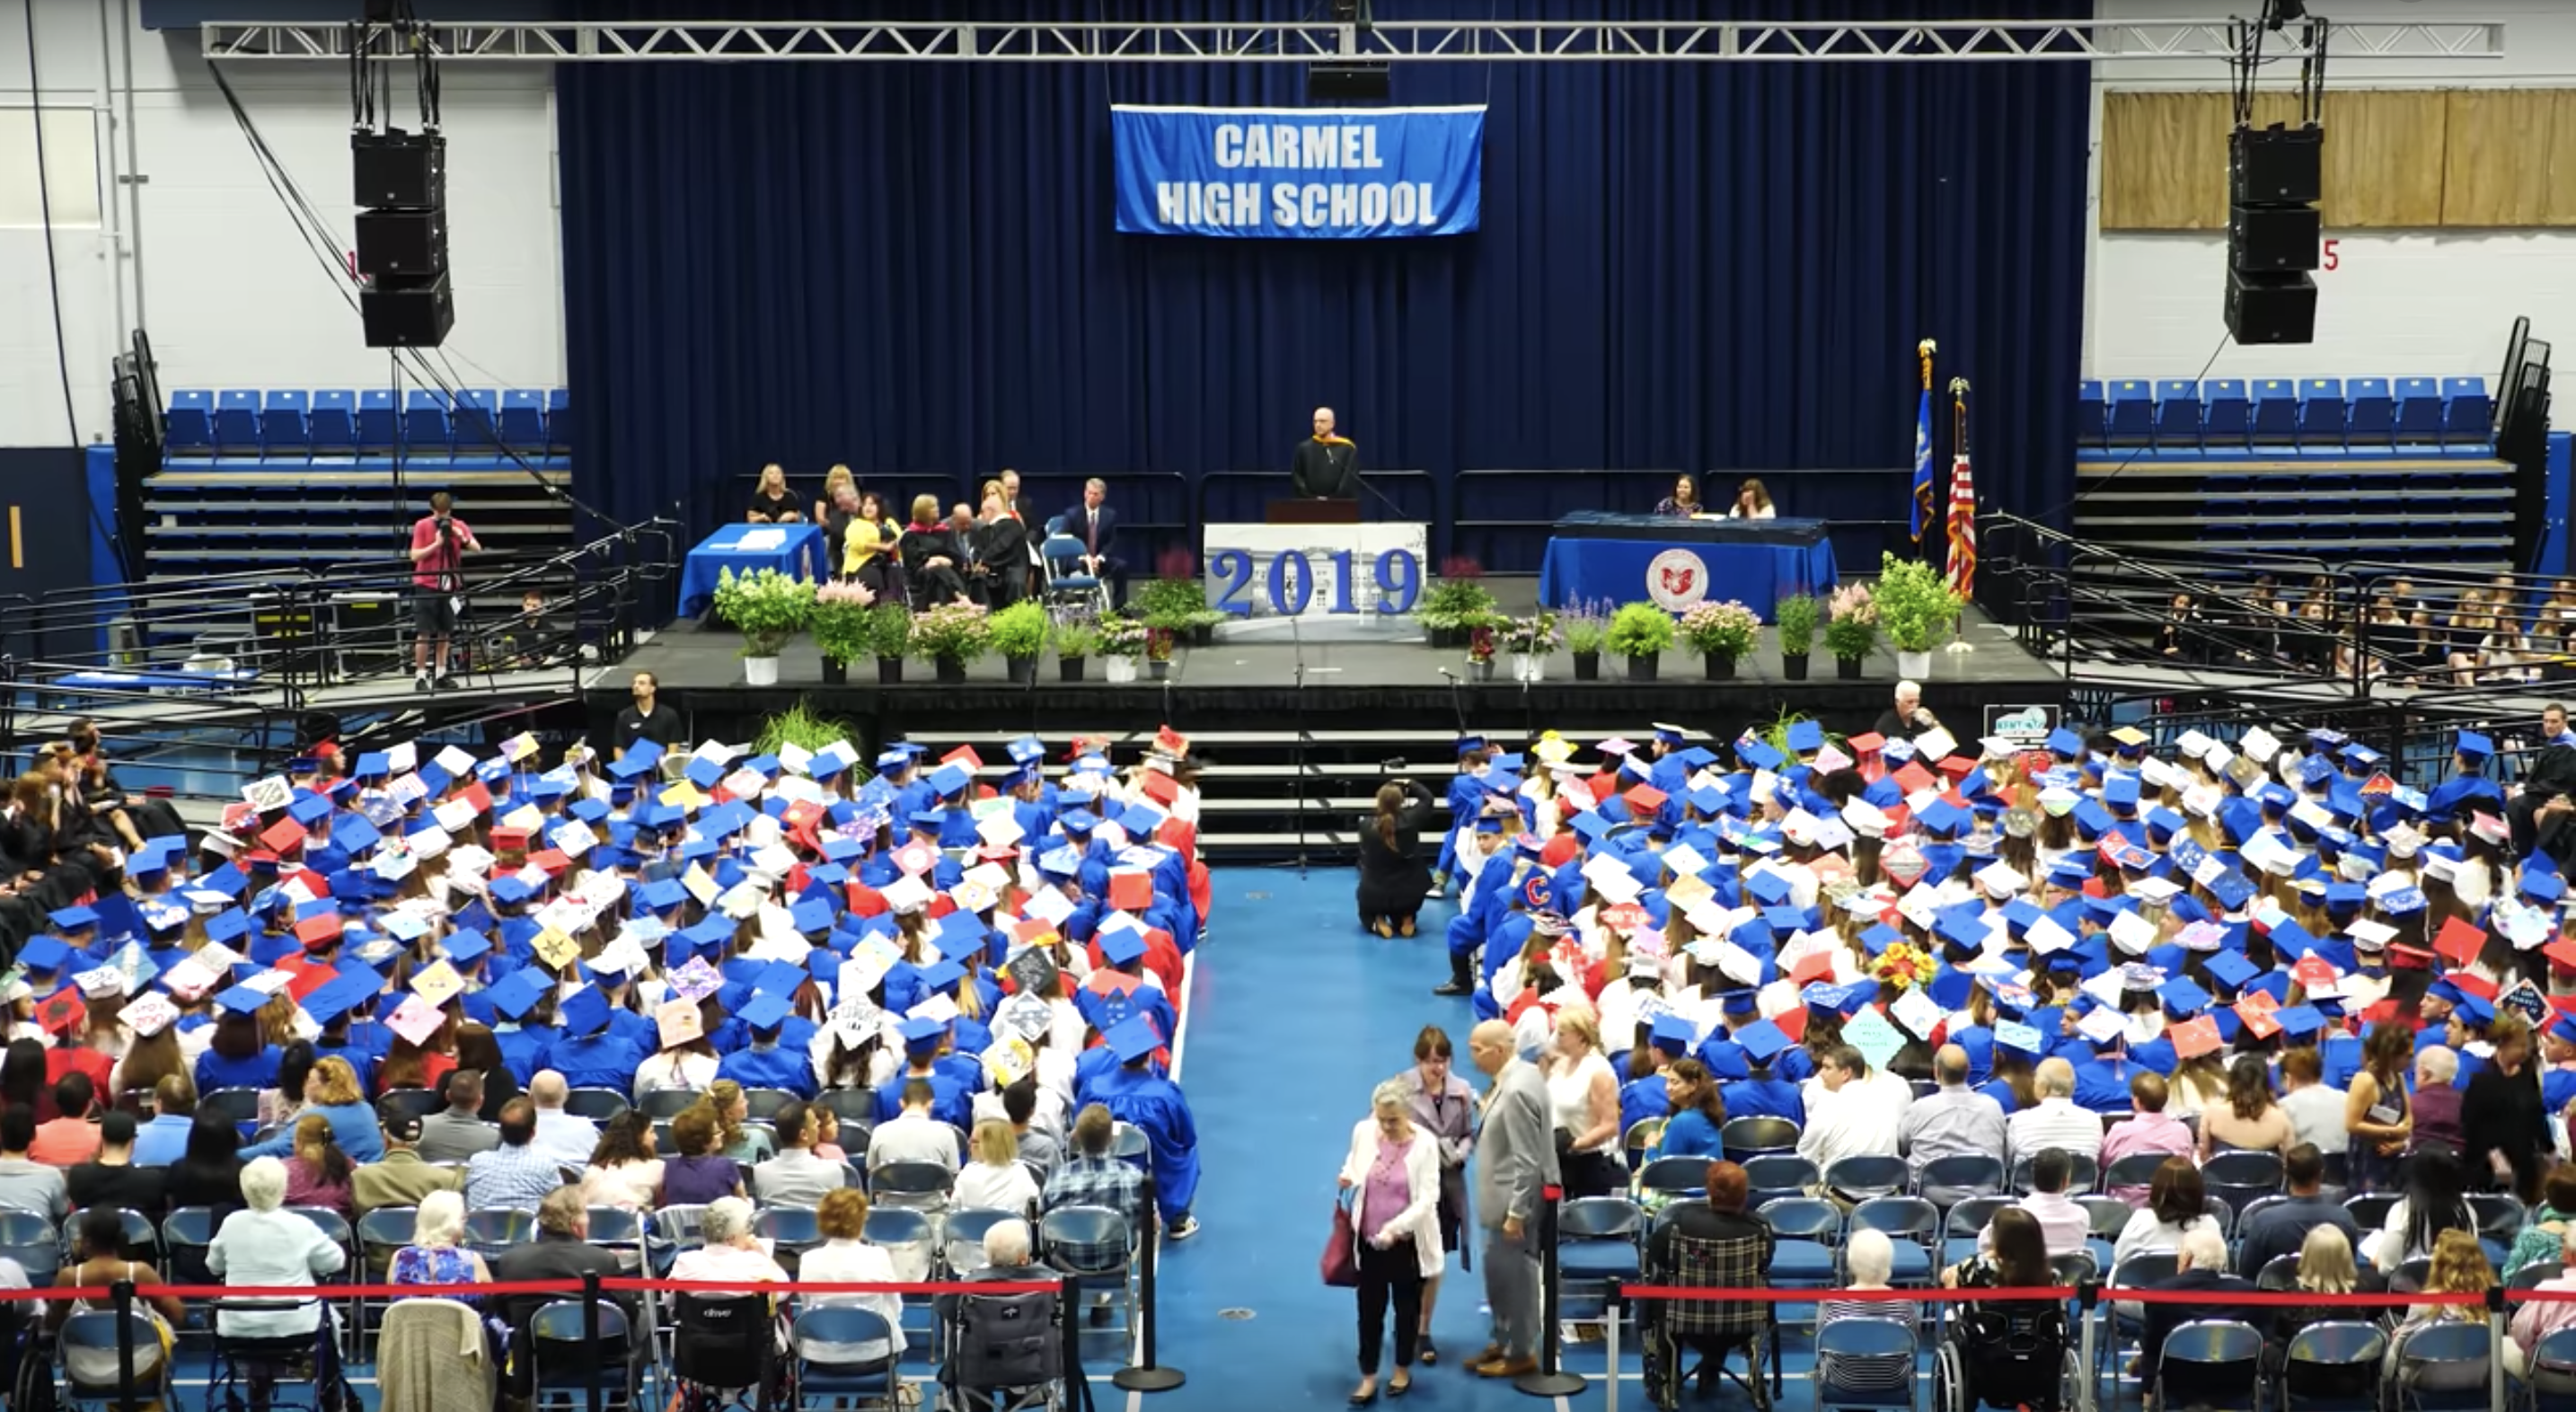 Carmel High School's graduation ceremony. | Source: YouTube:  RaneyDayMedia